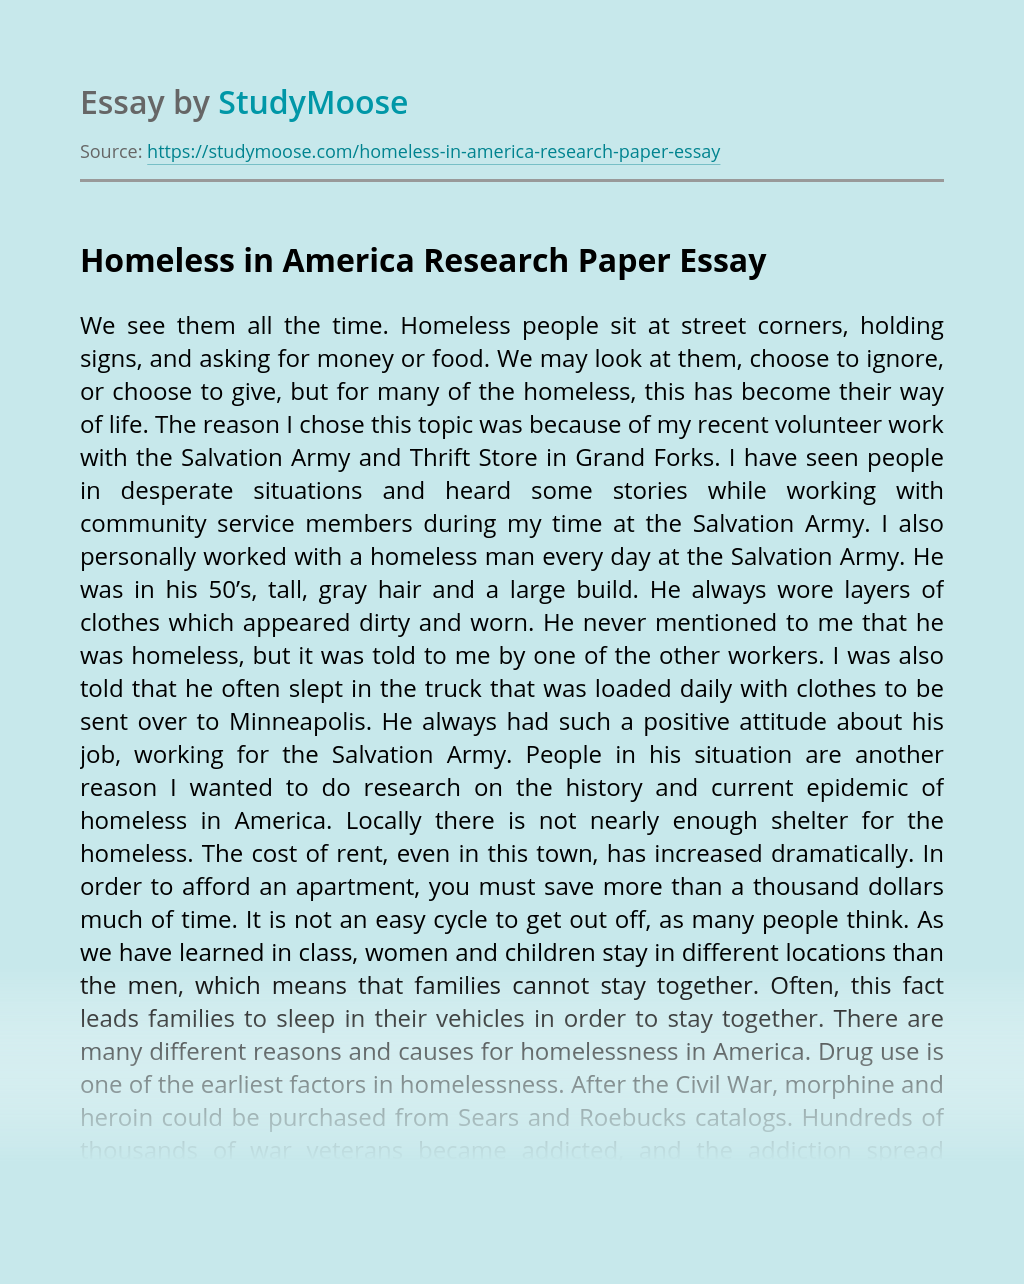 Homeless in America Research Paper